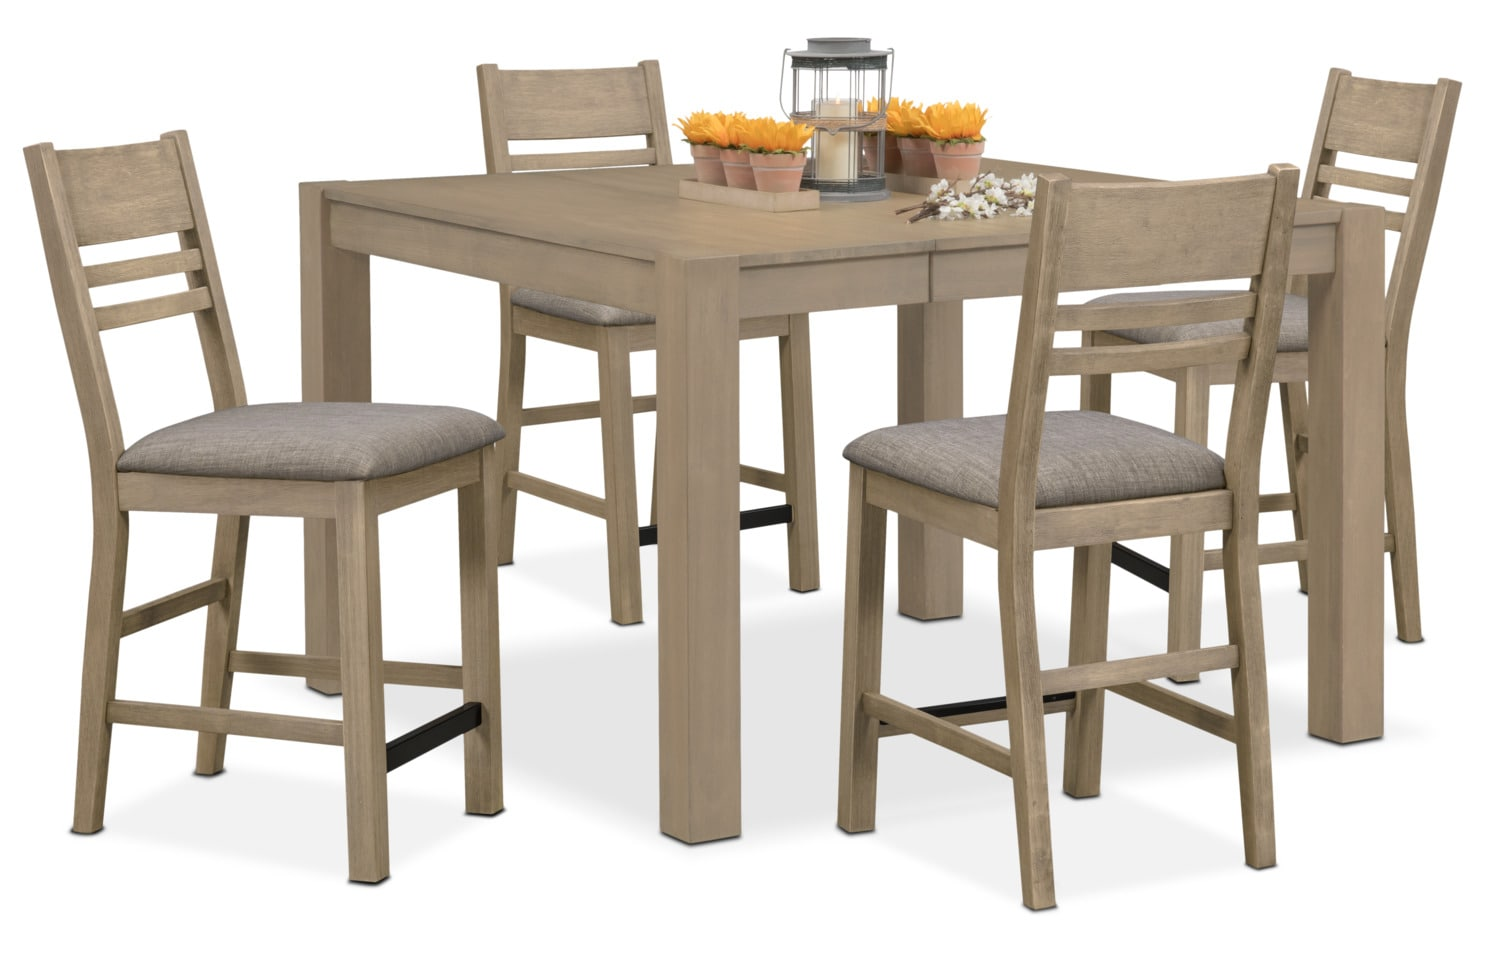 Dining Room Furniture - Tribeca Counter-Height Table and 4 Side Chairs - Gray